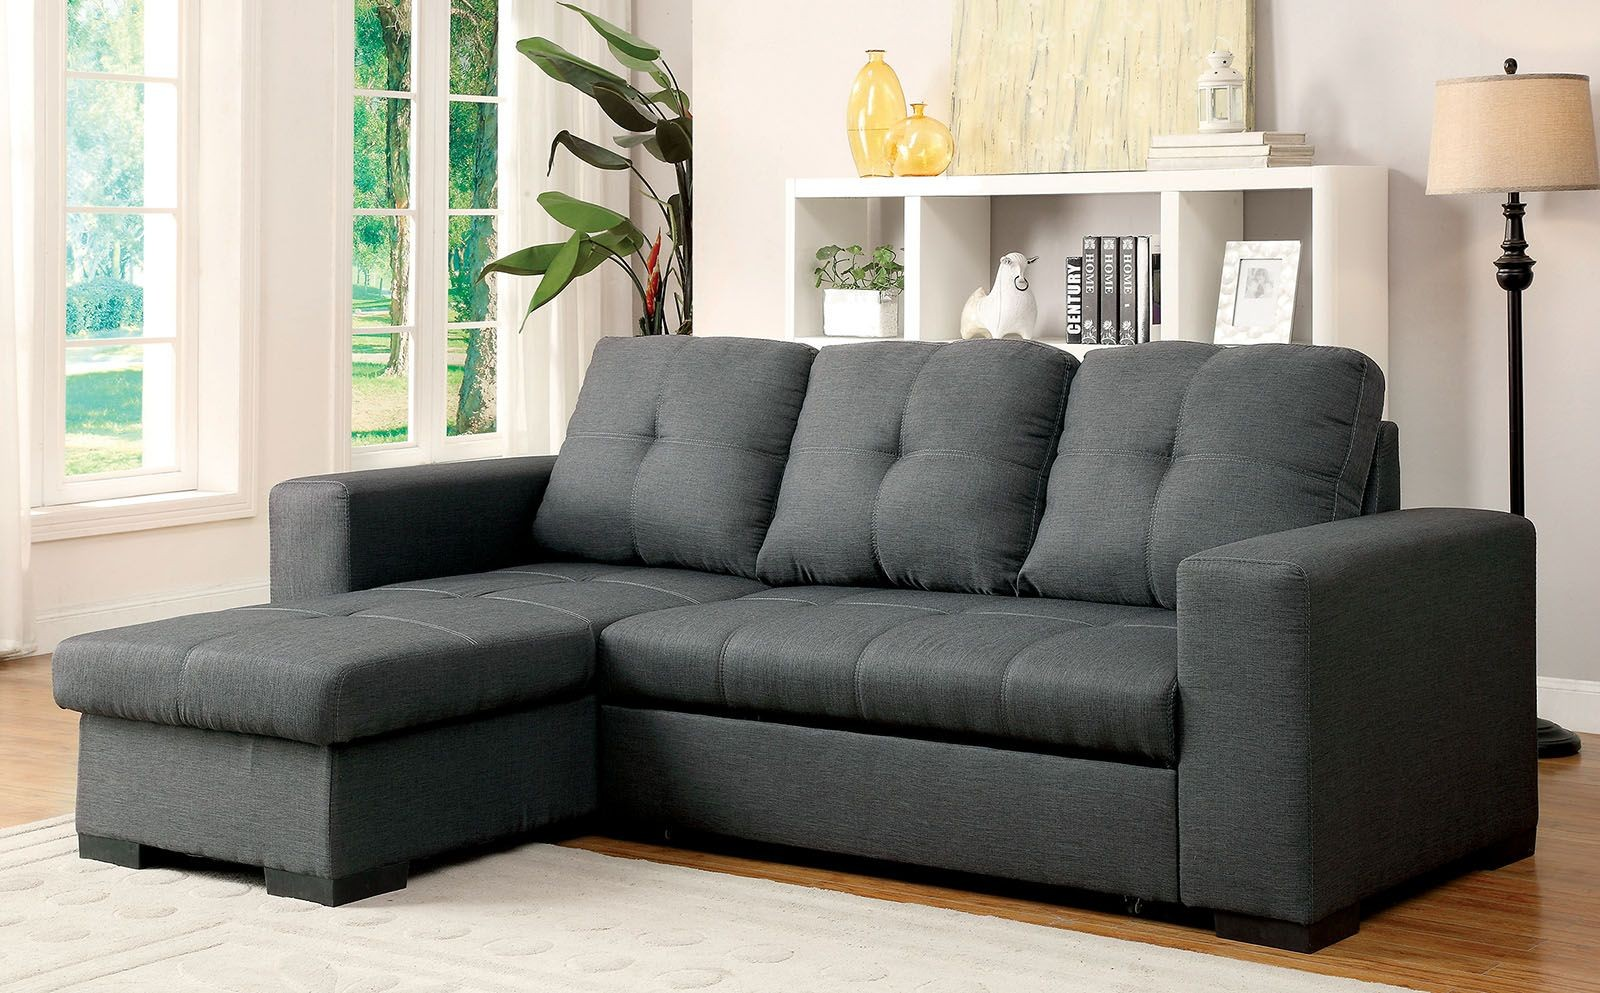 Denton Gray Fabric Sectional From Furniture Of America